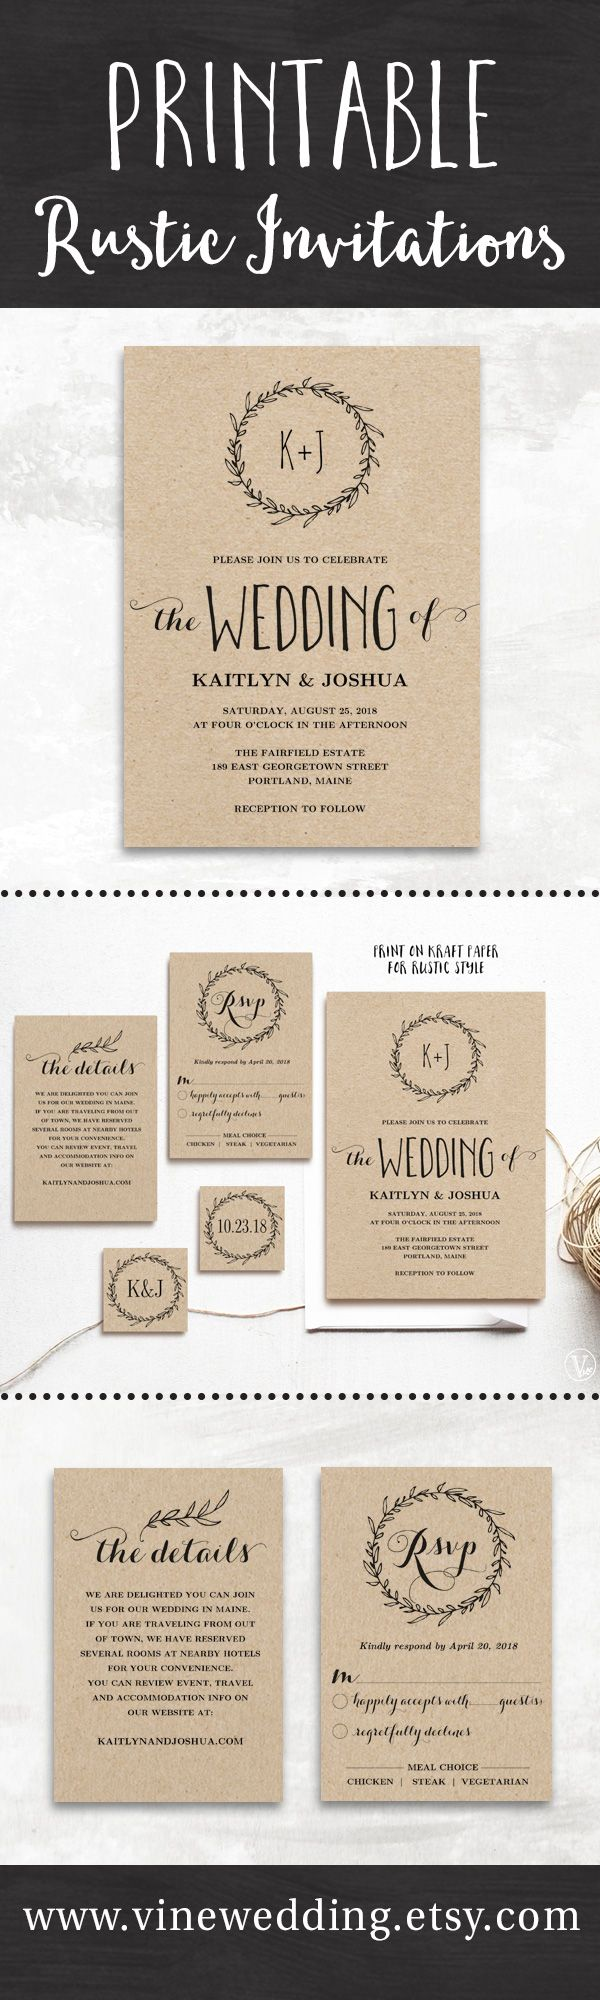 wedding invitation wording vegetarian option%0A Beautiful rustic wedding invitations  Editable instant download templates  you can print as many as you